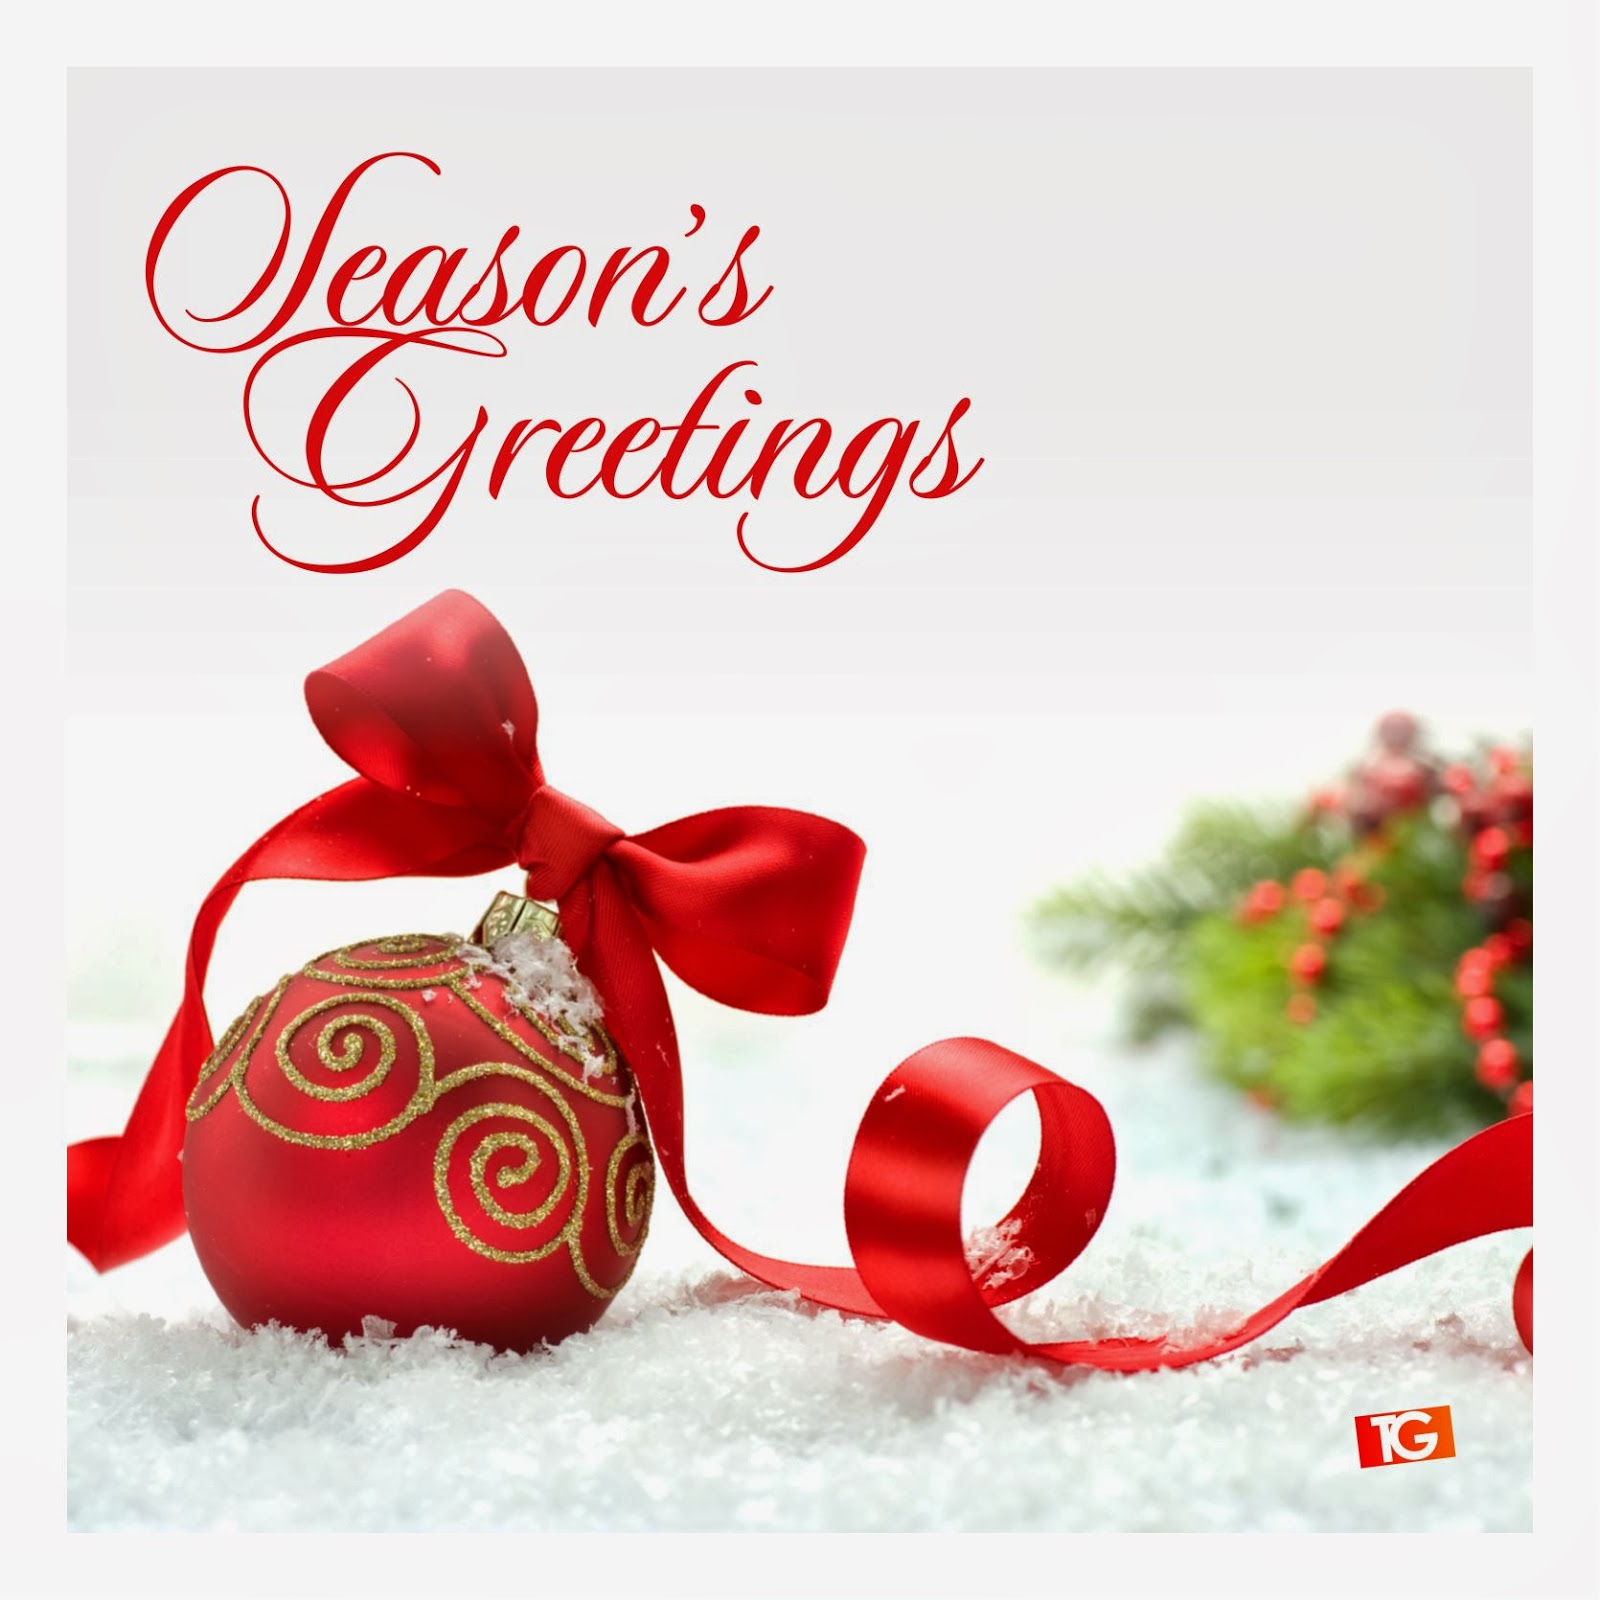 Season Greeting Wishes Choice Image Greetings Card Design Simple